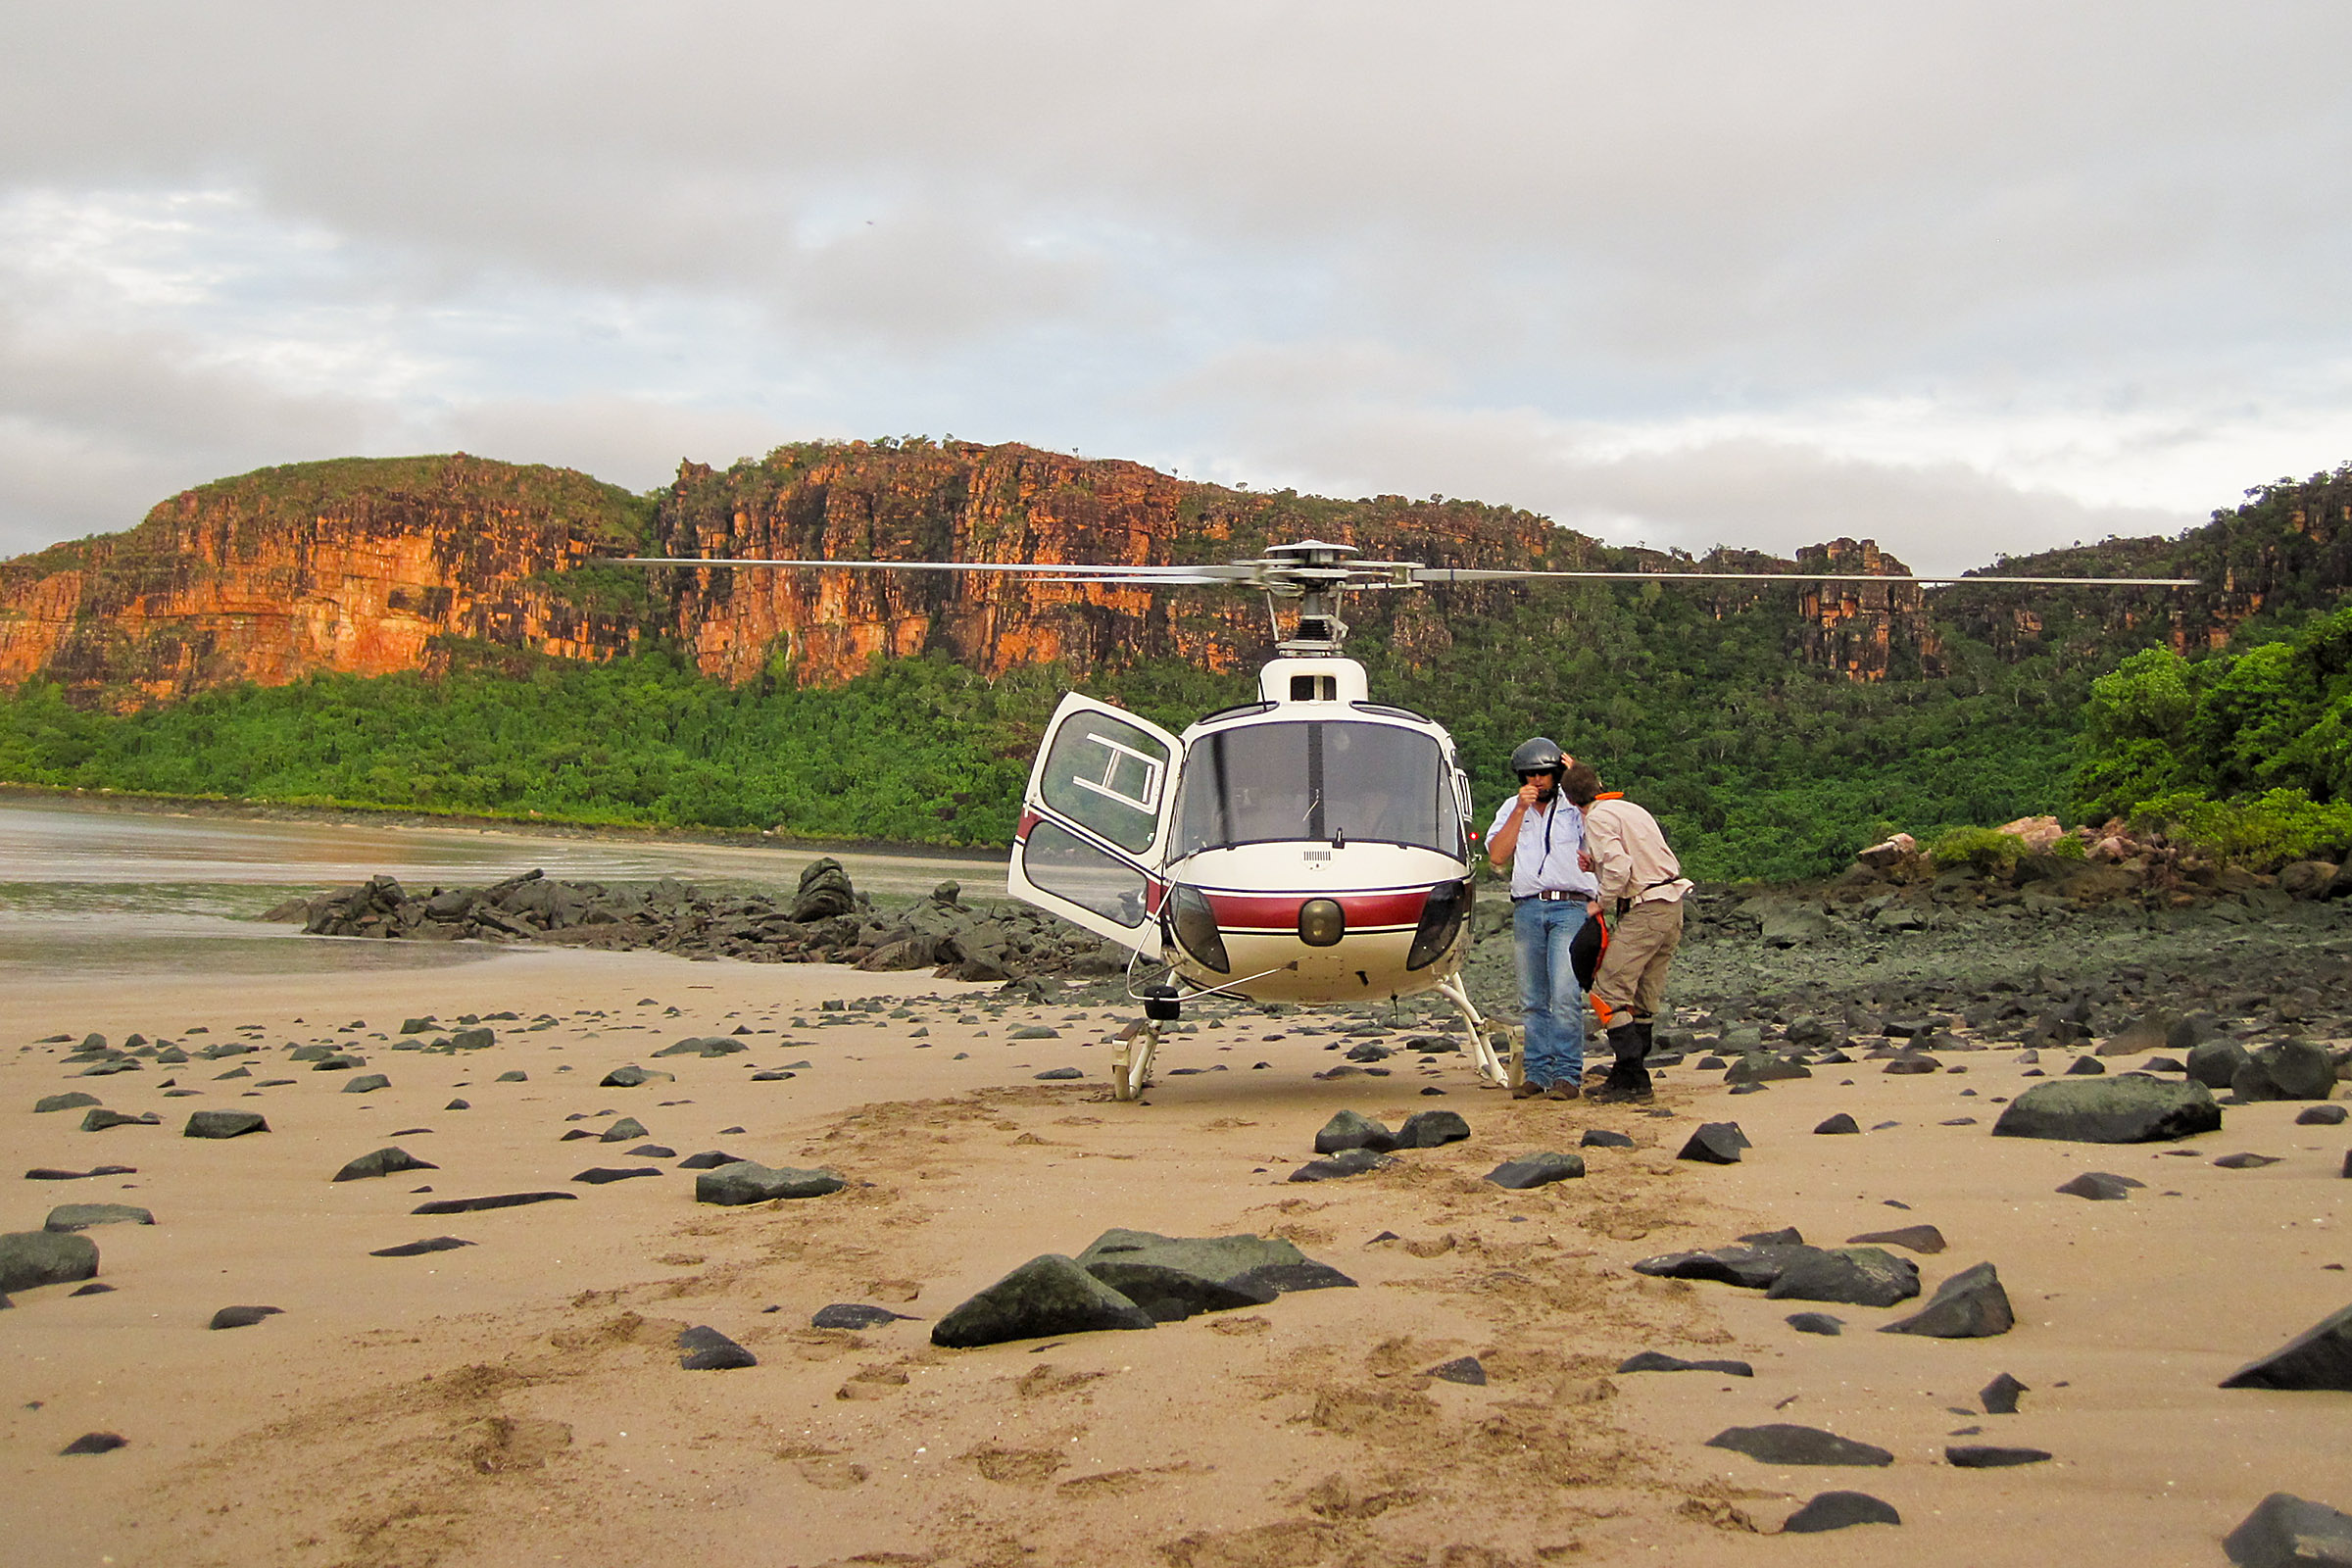 Helicopters are the best way to reach remote areas of the Kimberley. Image: Anna Simonsen